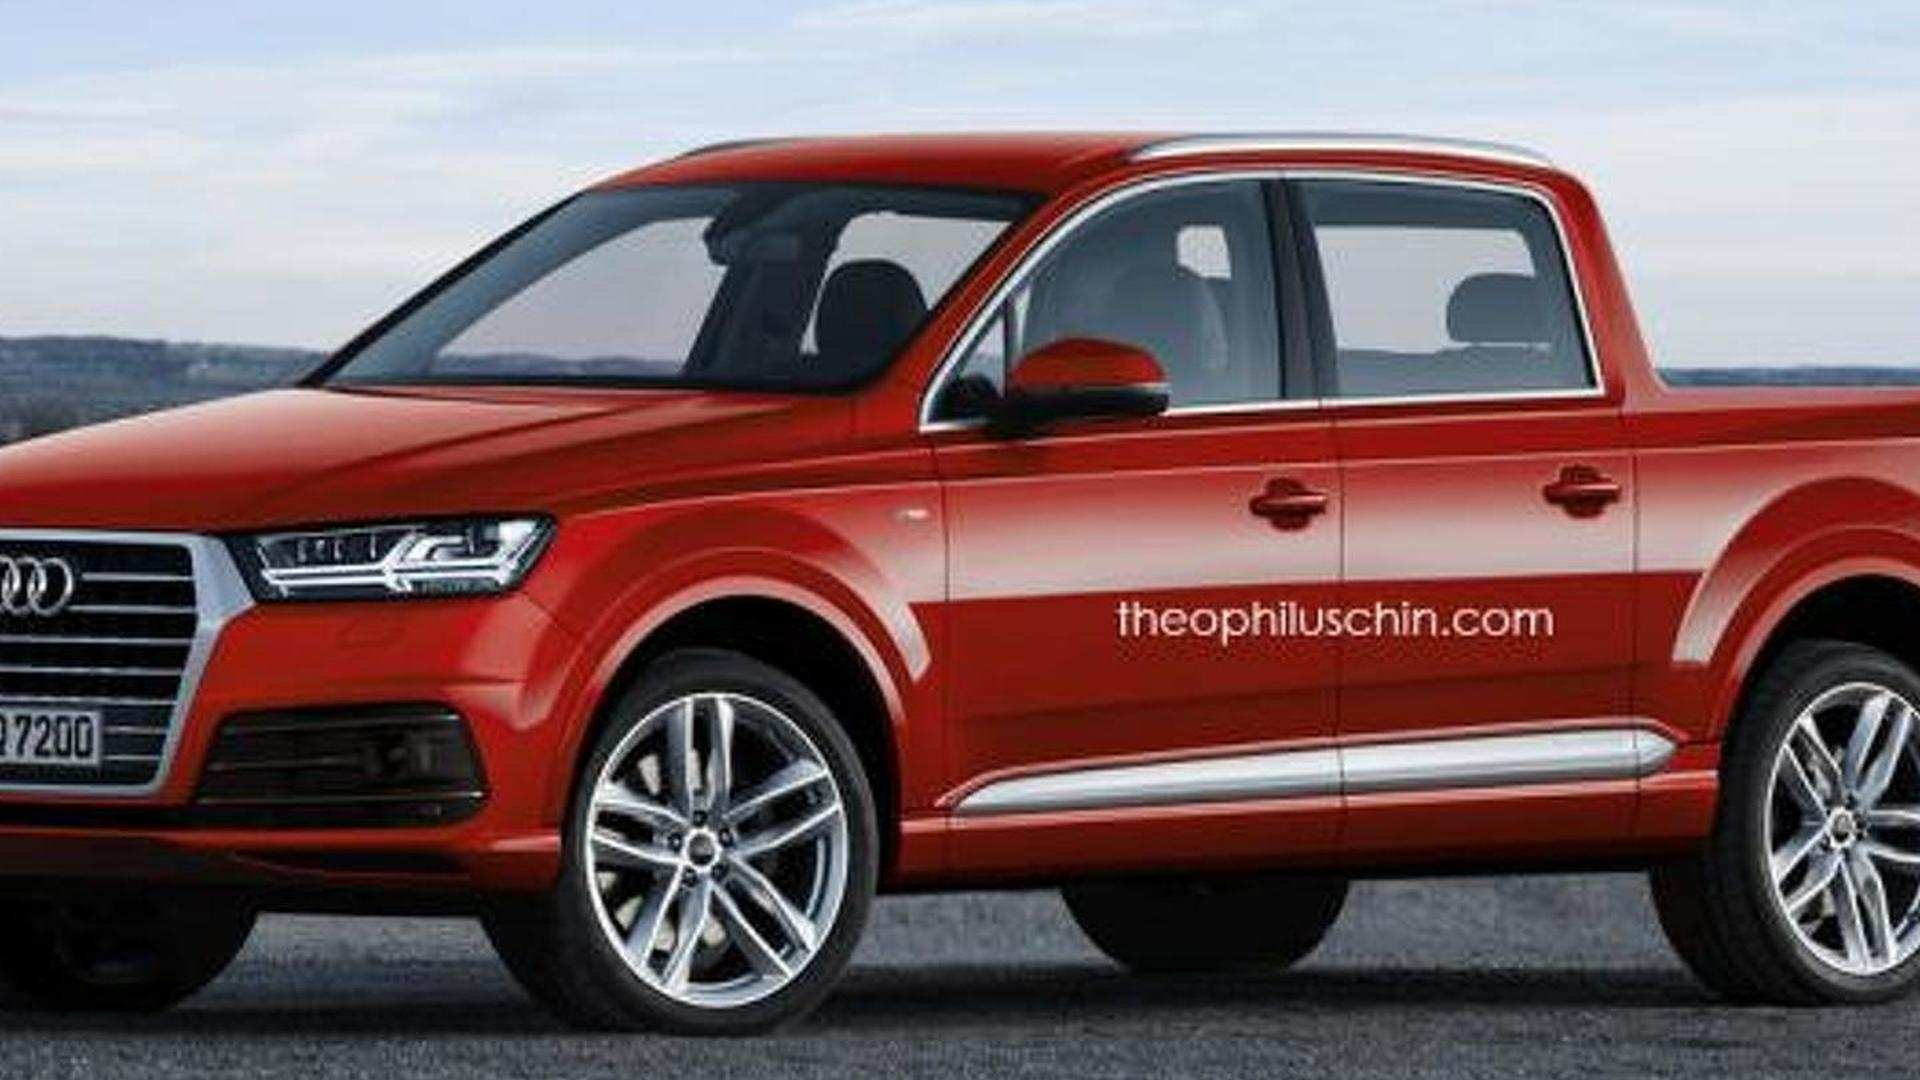 58 The 2020 Audi Bakkie Price Design And Review